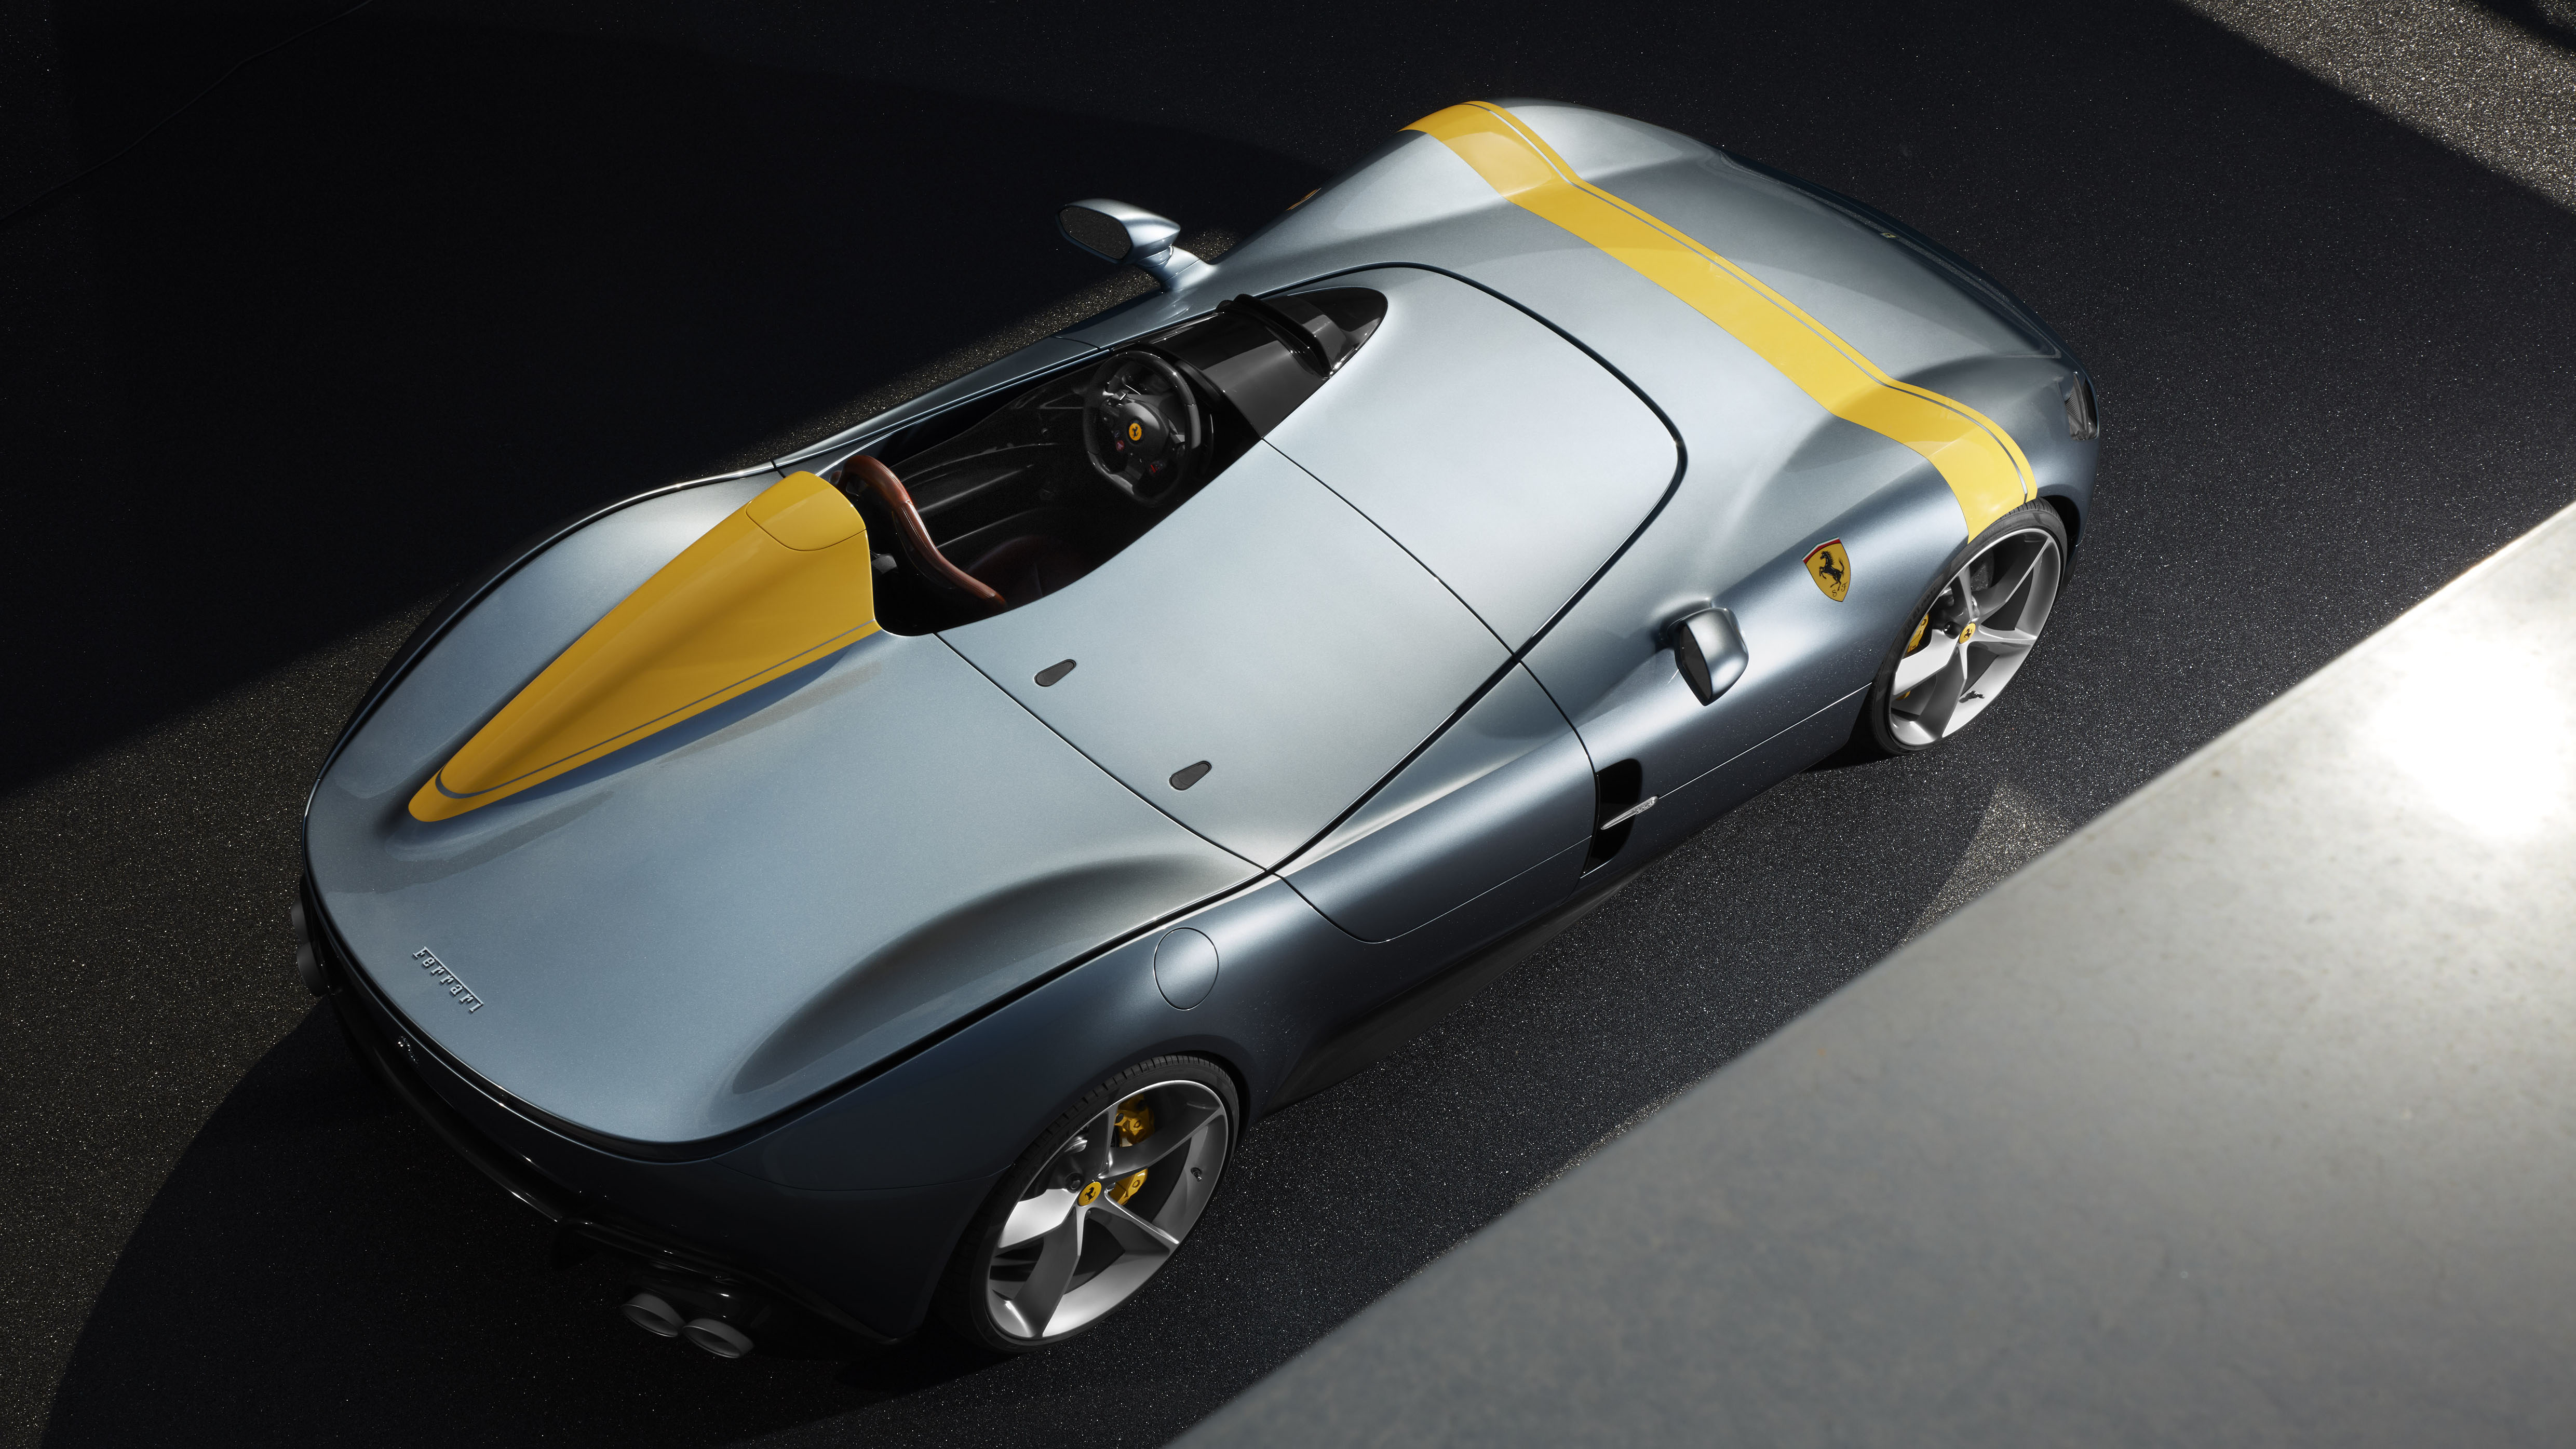 Ferrari seeks profit boost with Monza retro-styled supercar